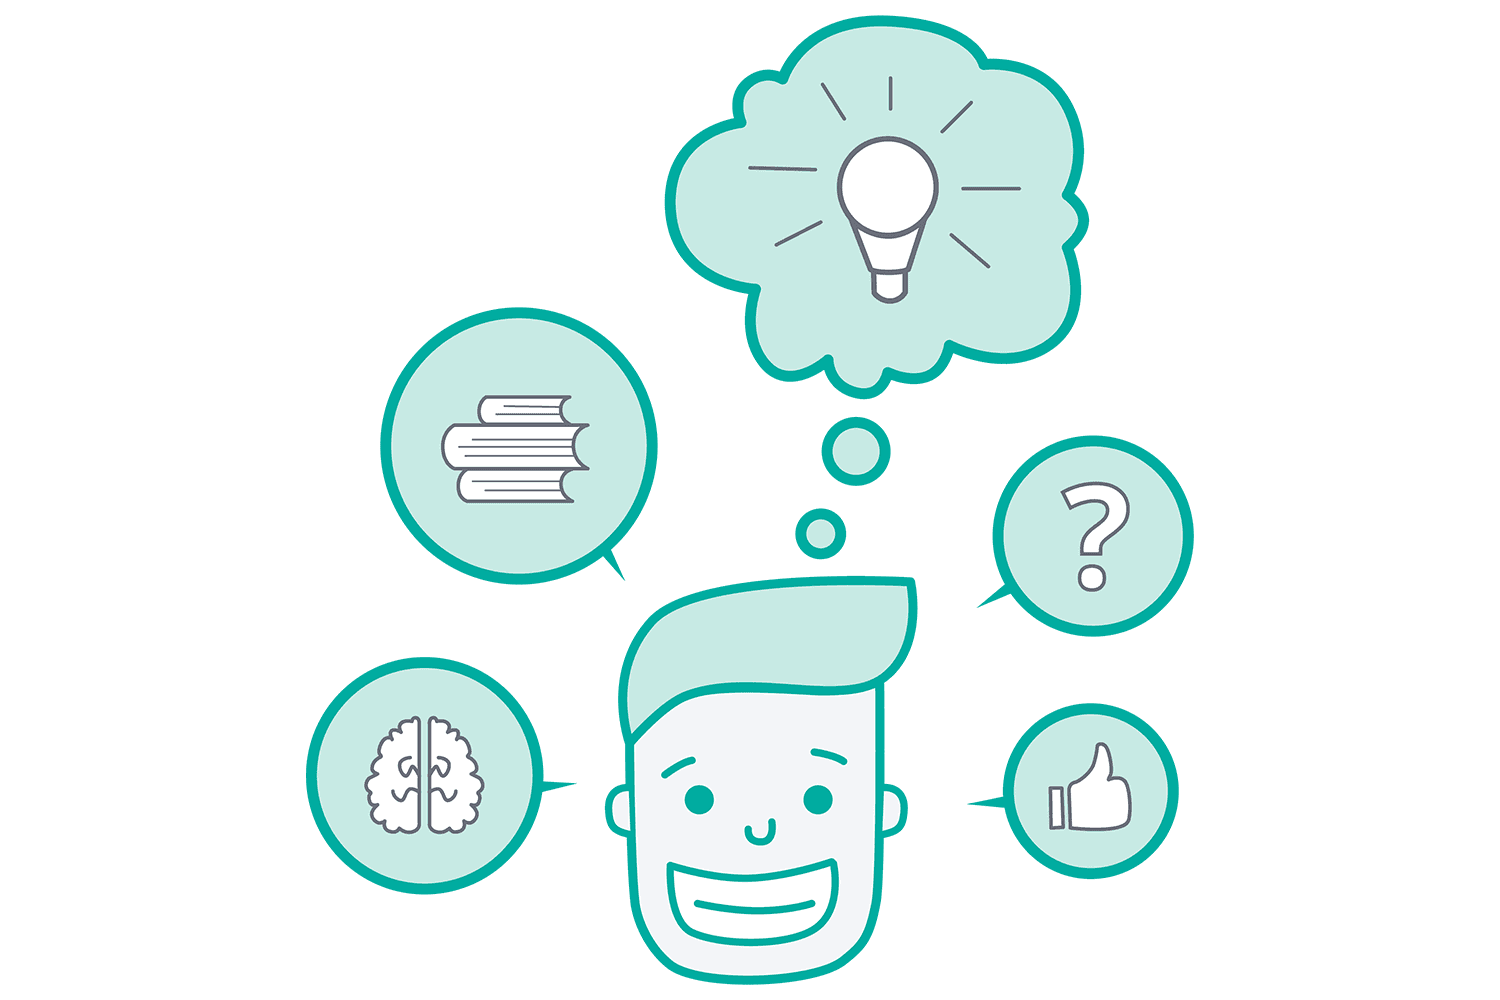 illustration of person's head with thought bubbles surrounding it